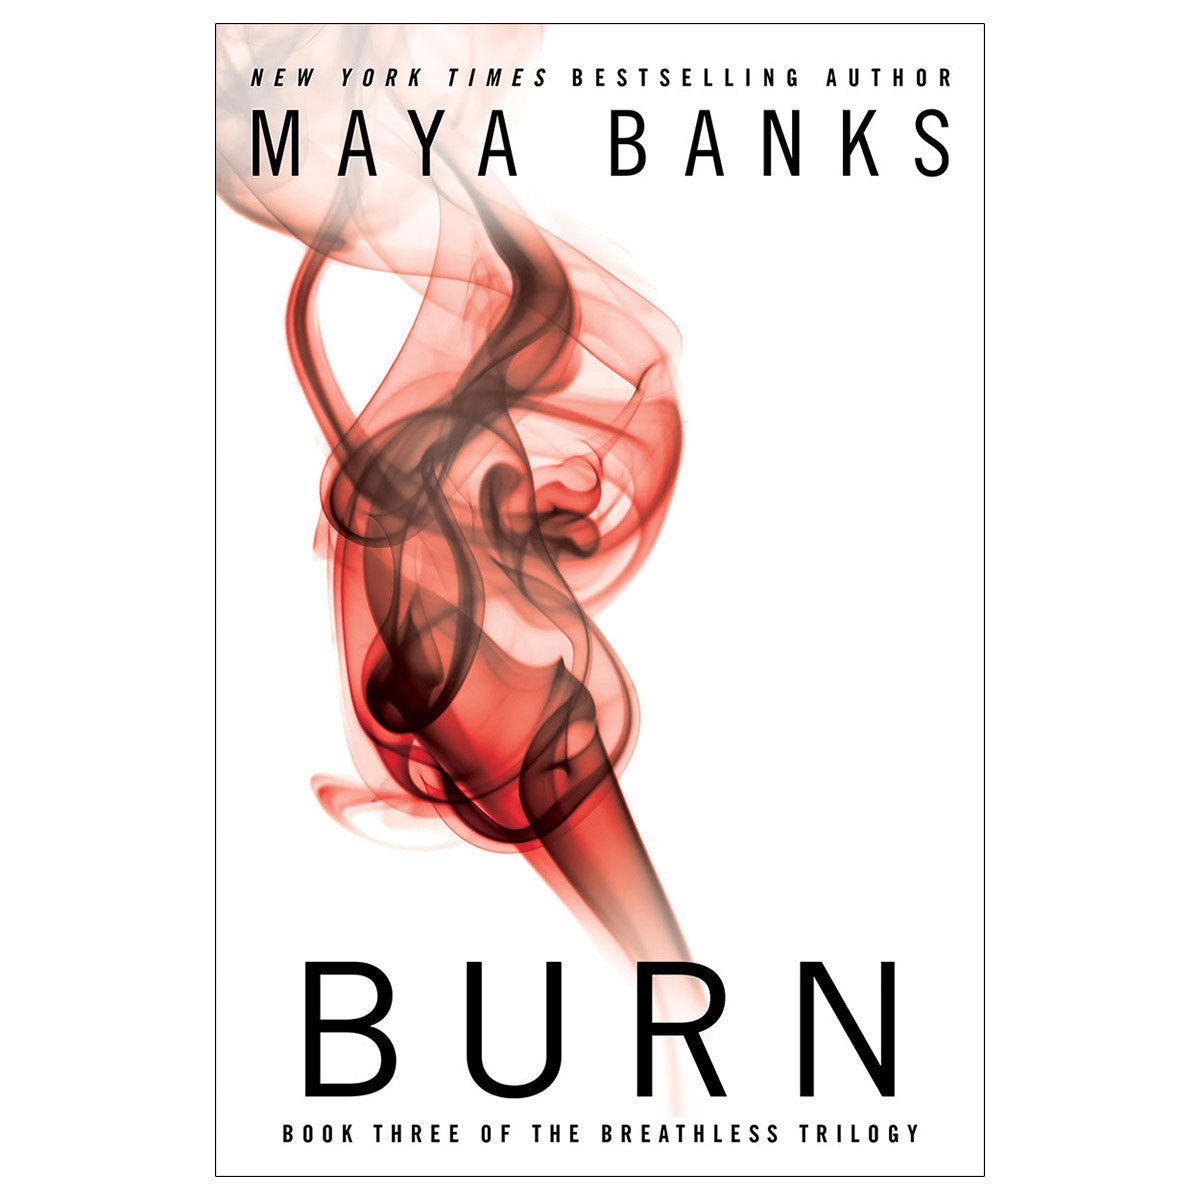 Burn by Maya Banks - Book Three of the Breathless Trilogy - Penguin